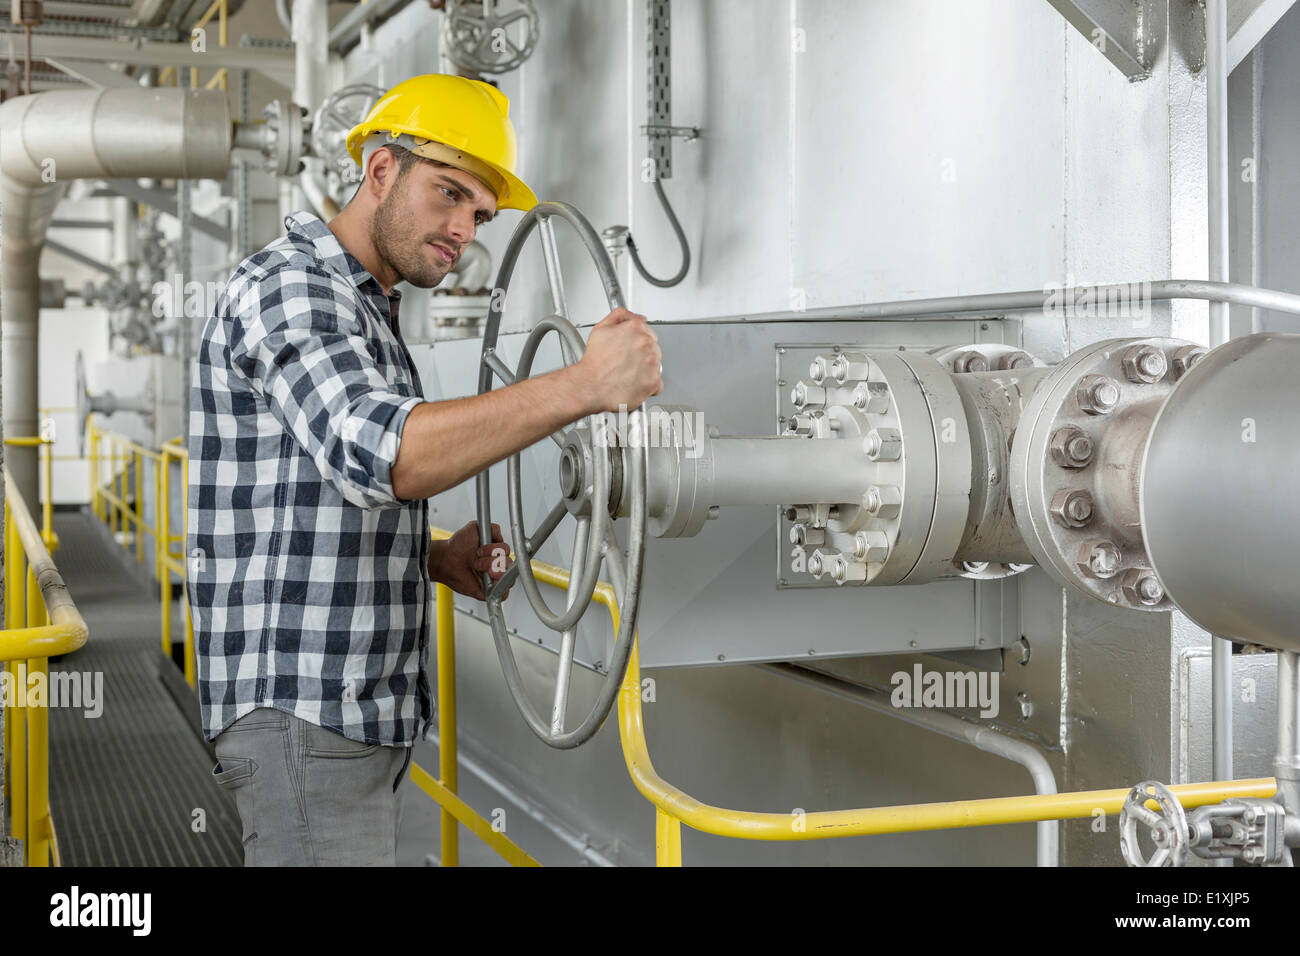 Industrial worker turning large valve - Stock Image